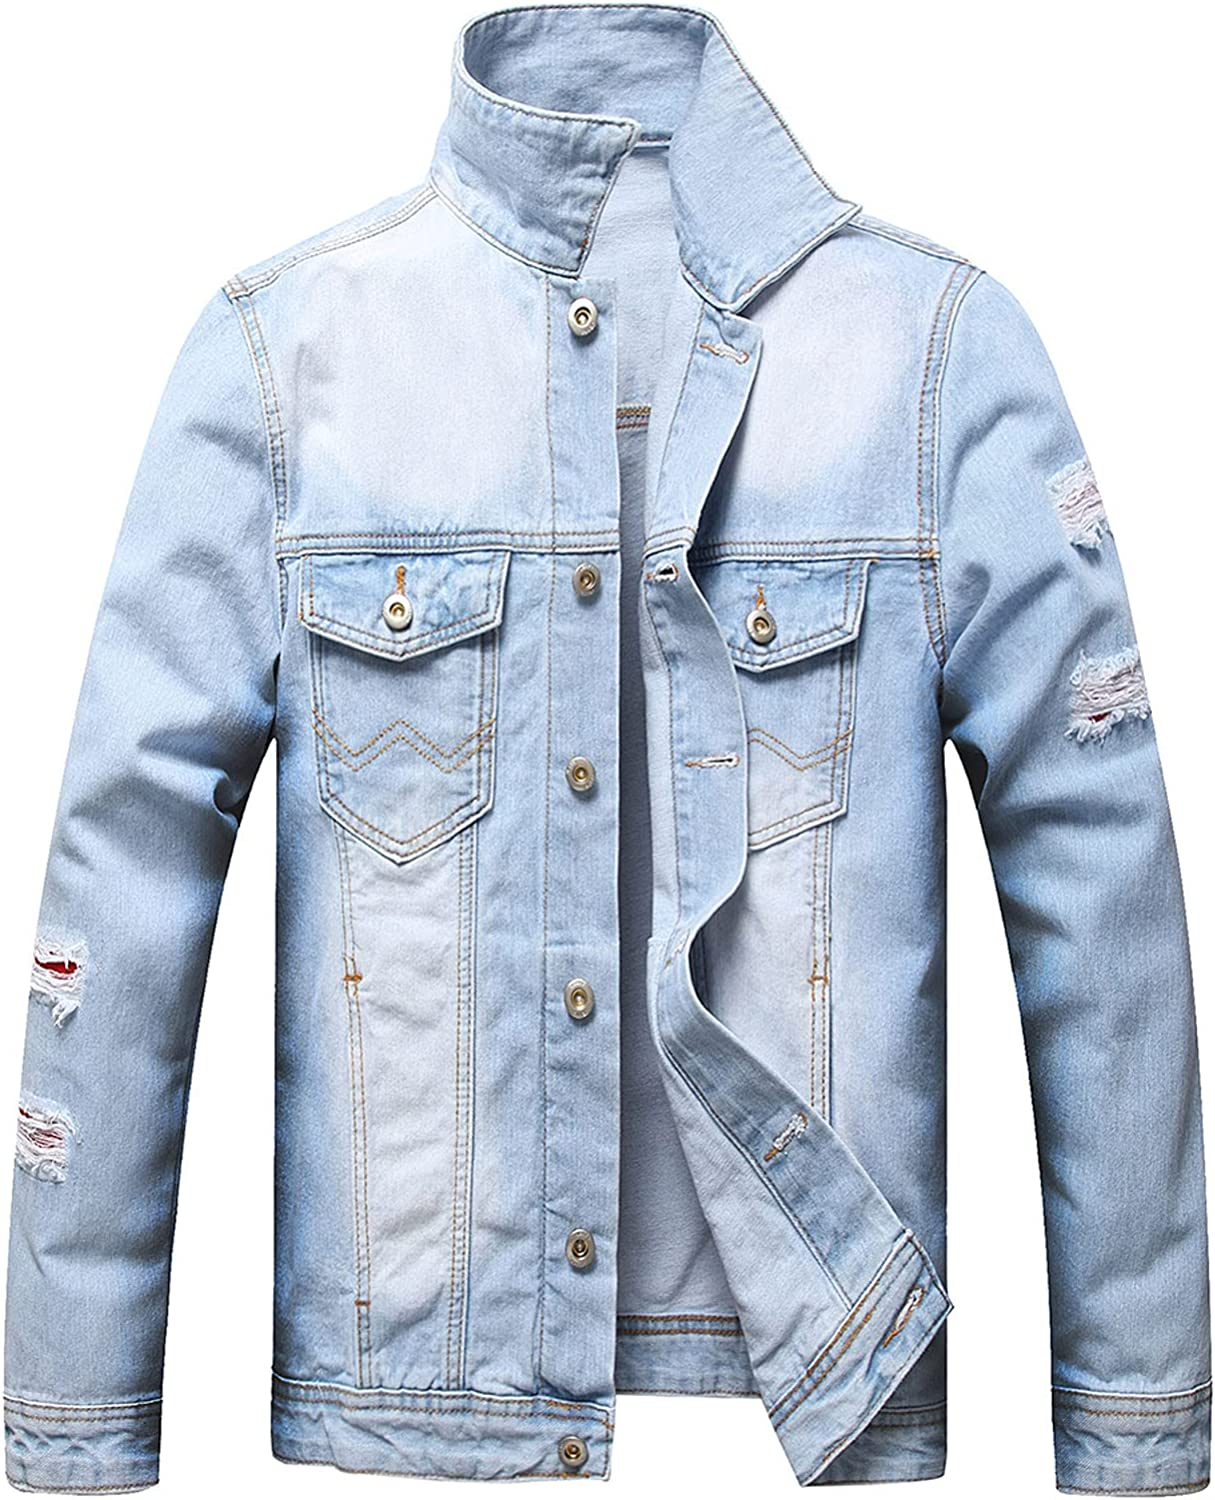 Denim Jackets for Men, Classic Slim Fit Distressed Fray Jean Jackets Casual Long Sleeve Button Down Denim Outerwear